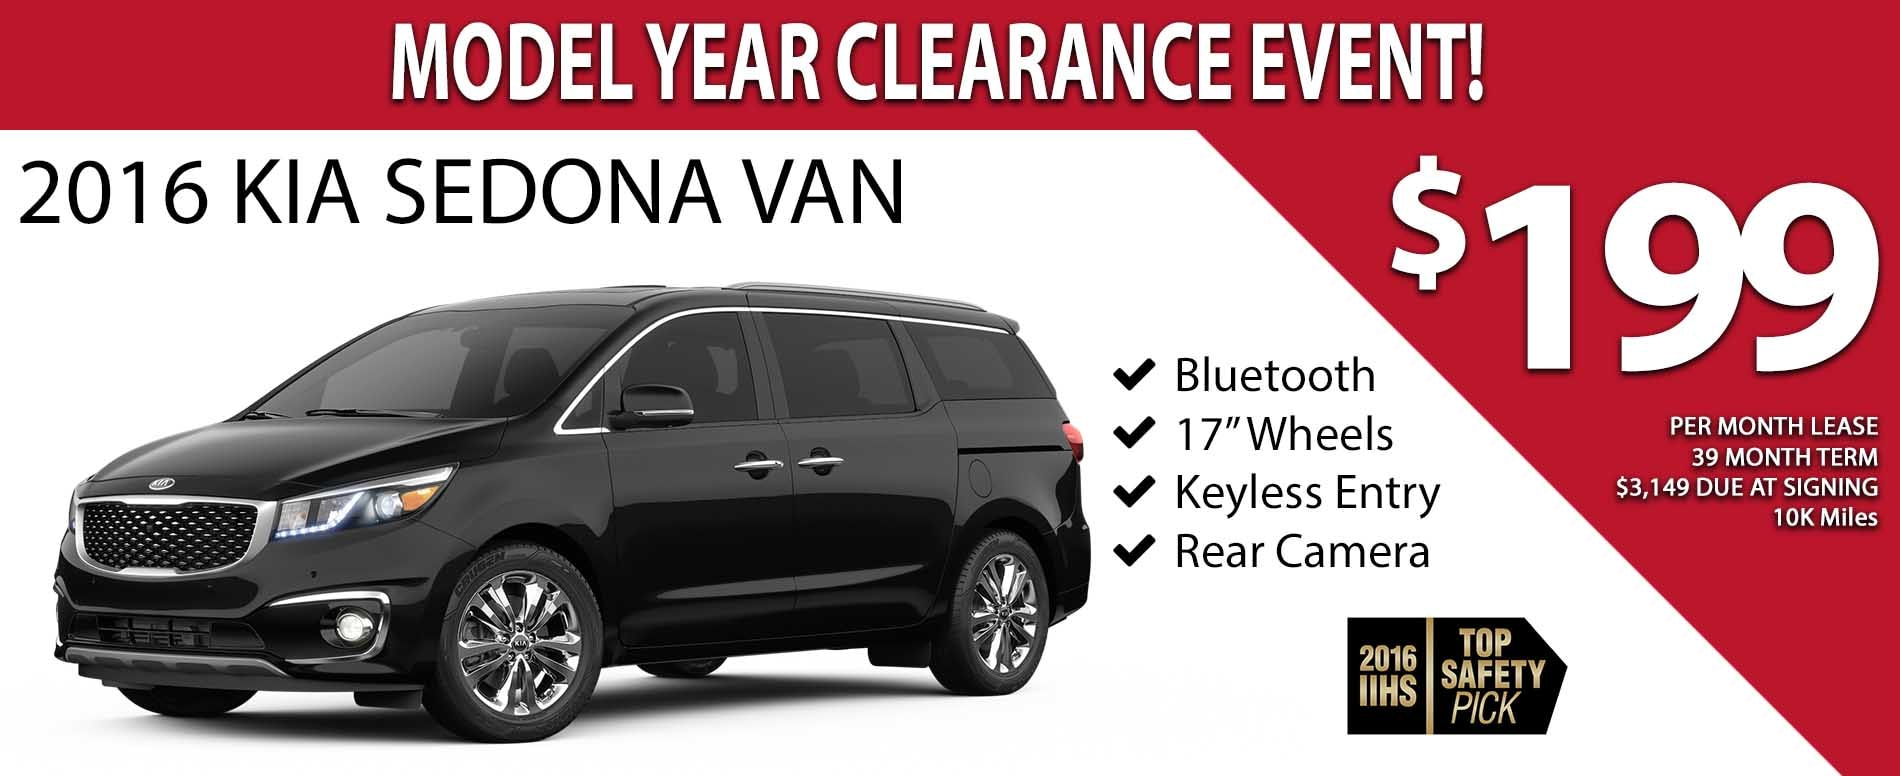 2016 Model Year Clearance Event - Lease a 2016 Kia Sedona for only $199 per month! - Exp. 02/28/2017